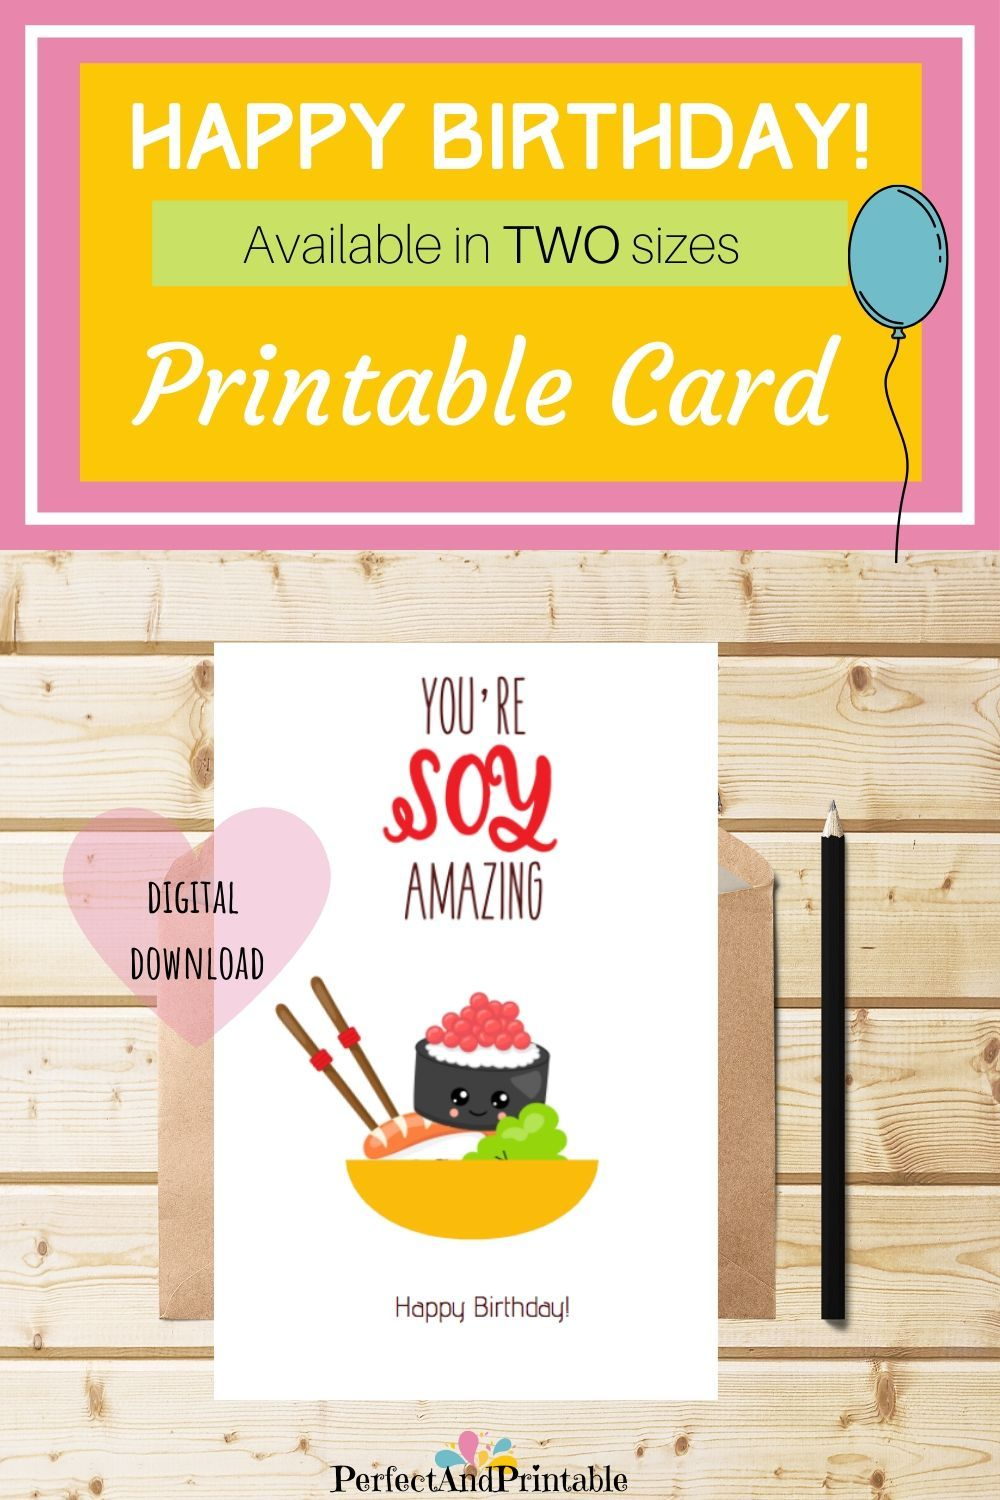 Sushi Lover Birthday Cute Pun Card Fun Colourful Quirky Etsy Digital Birthday Cards Birthday Cards For Friends Pun Card